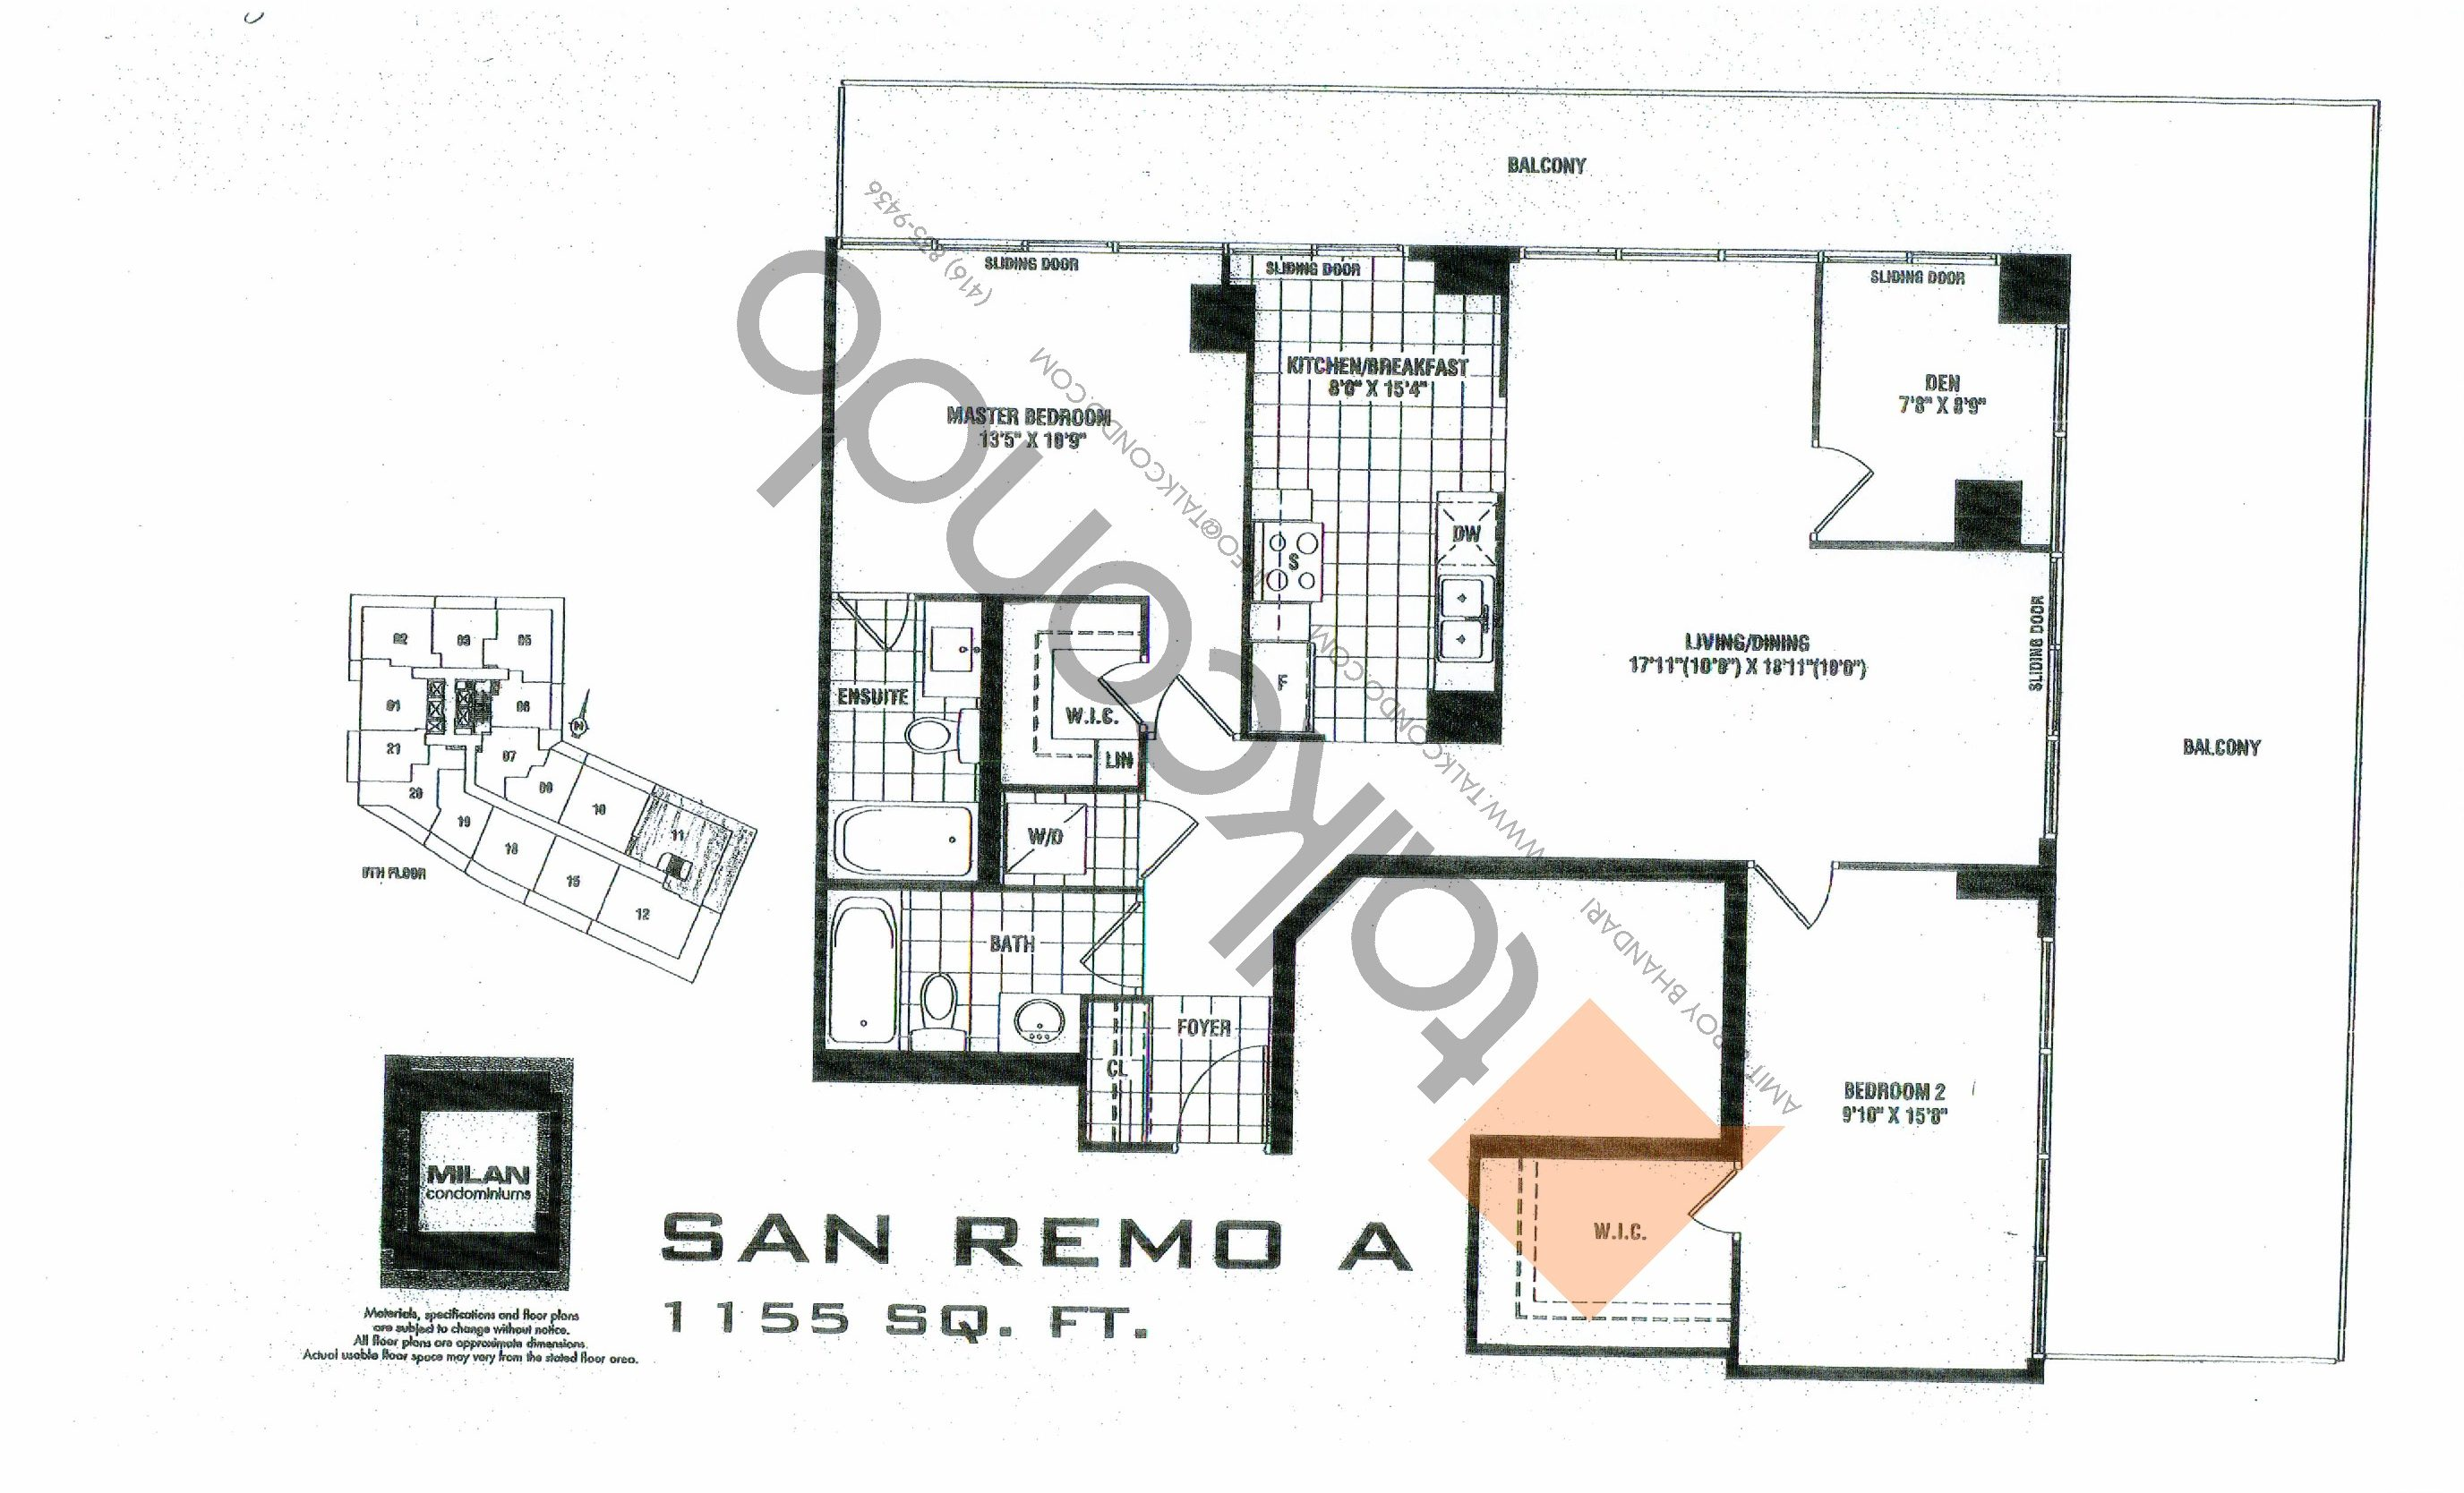 San Remo A Floor Plan at Milan Condos - 1155 sq.ft